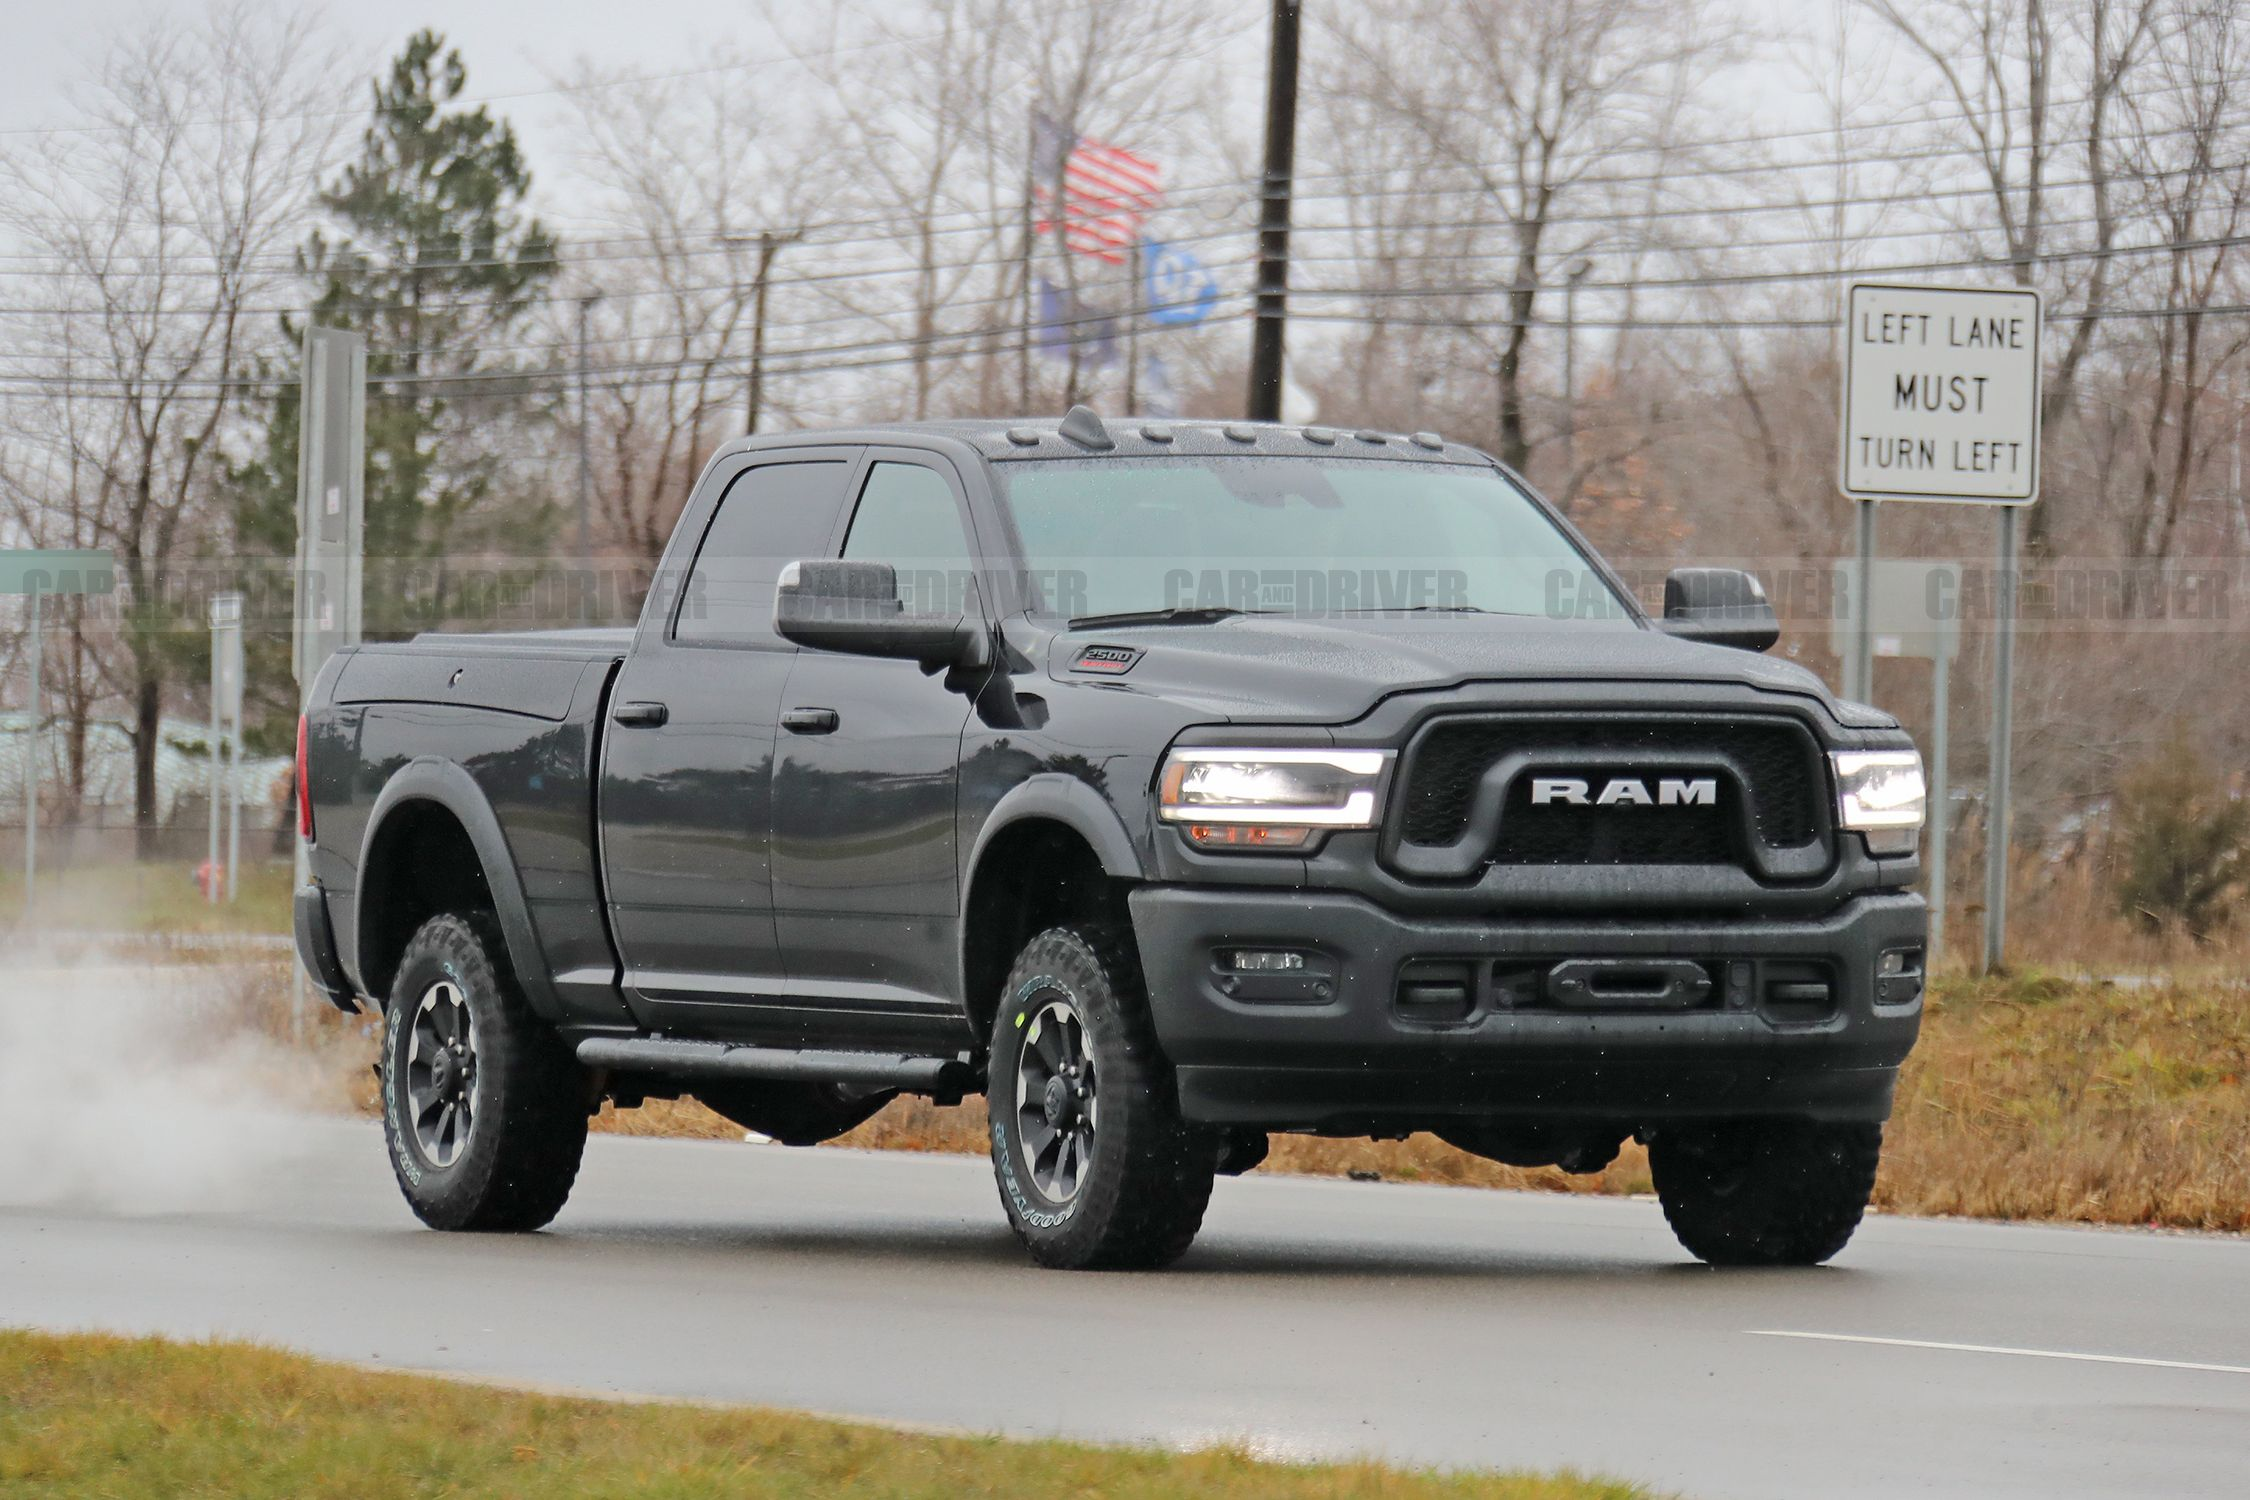 New 2020 Ram Power Wagon 2500 - Photos of Heavy-Duty Pickup